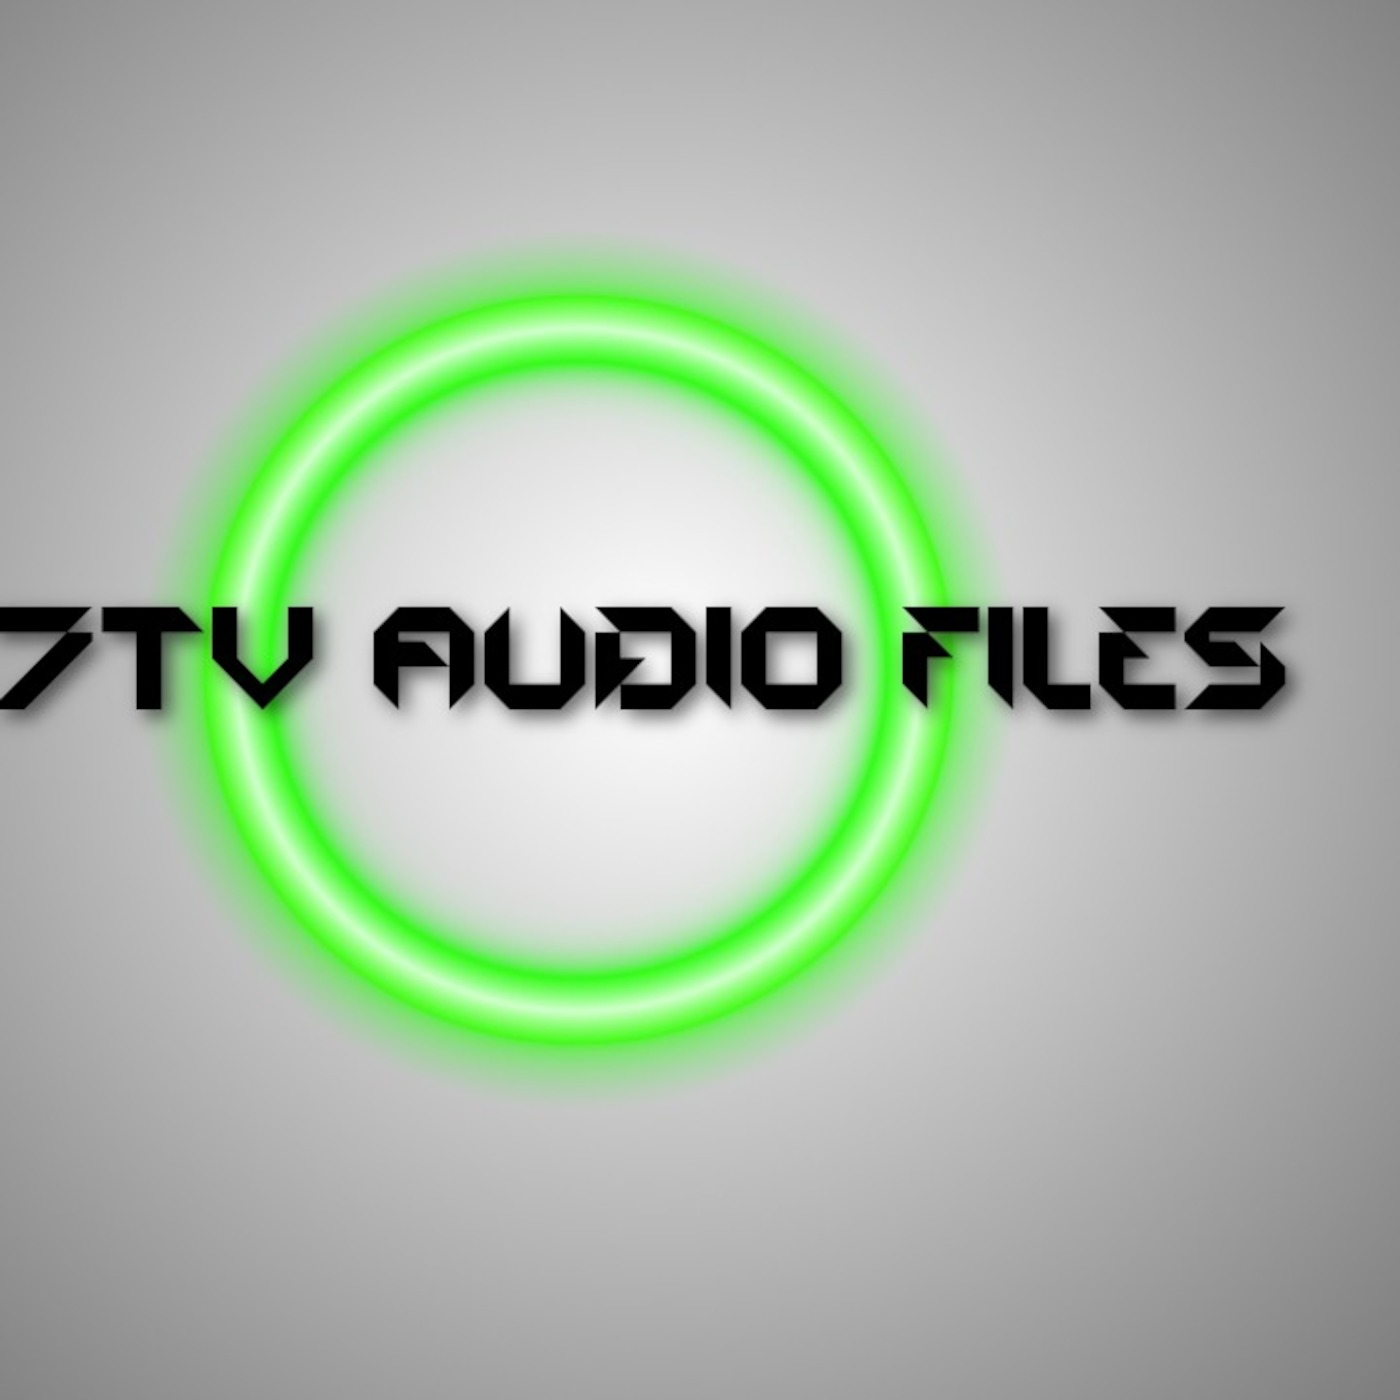 7TV Audio Files